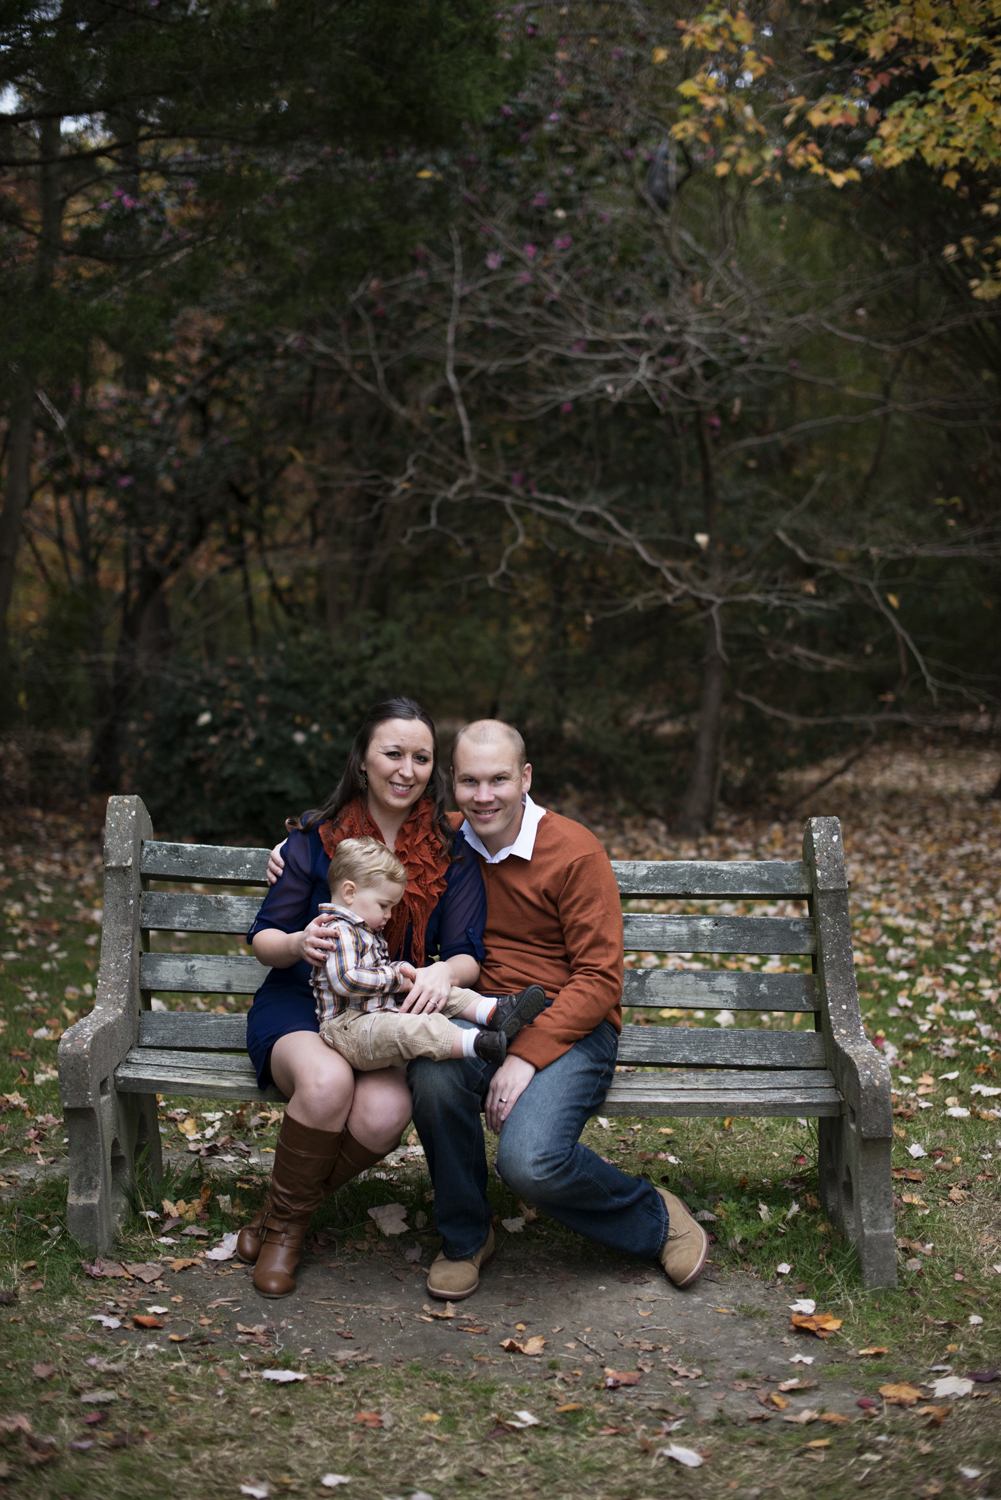 Orange and blue family picture outfit ideas